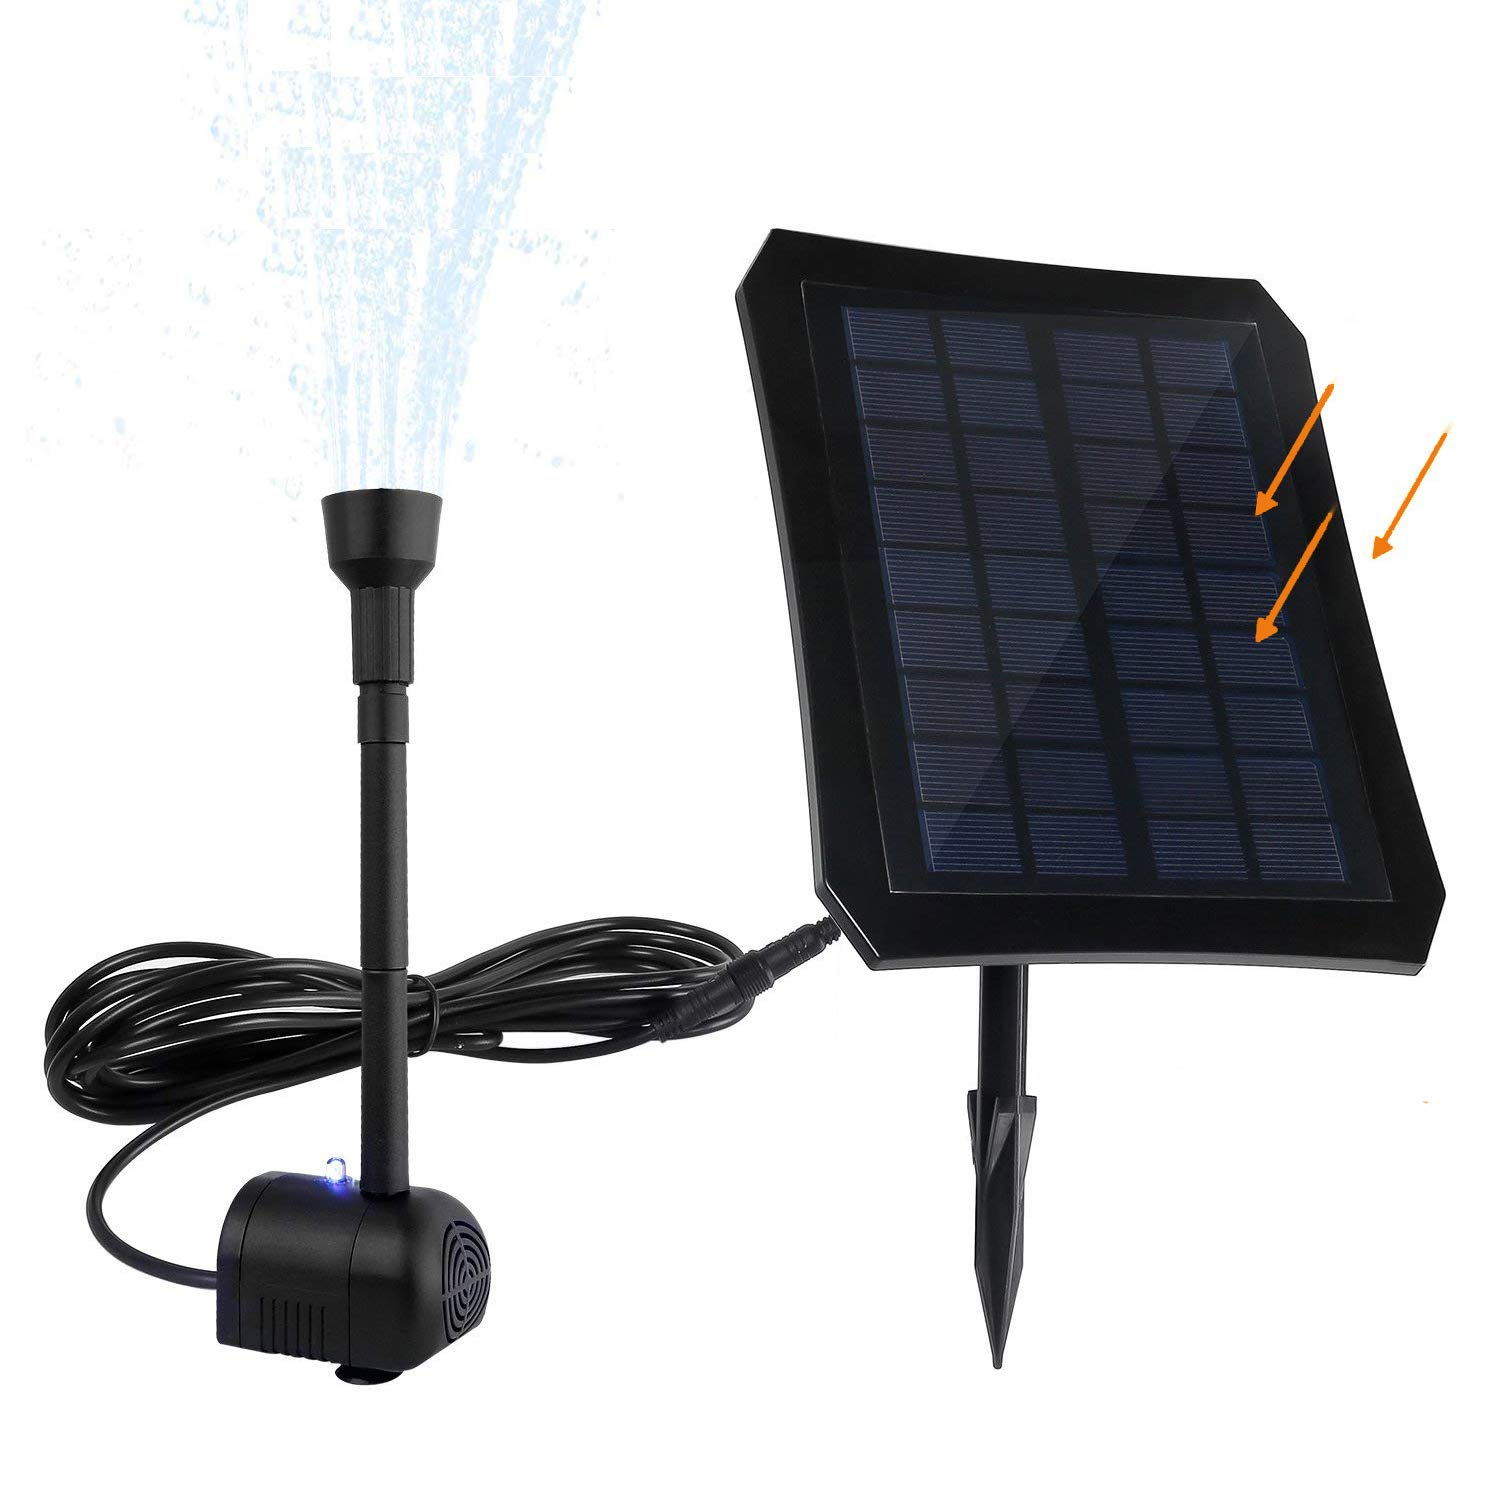 Solar Powered Water Fountain, Colourful LED Pump with Built-in Battery, Solar Panel with Ground Stake, Ideal Decoration Kit for Garden, Pond, Pool